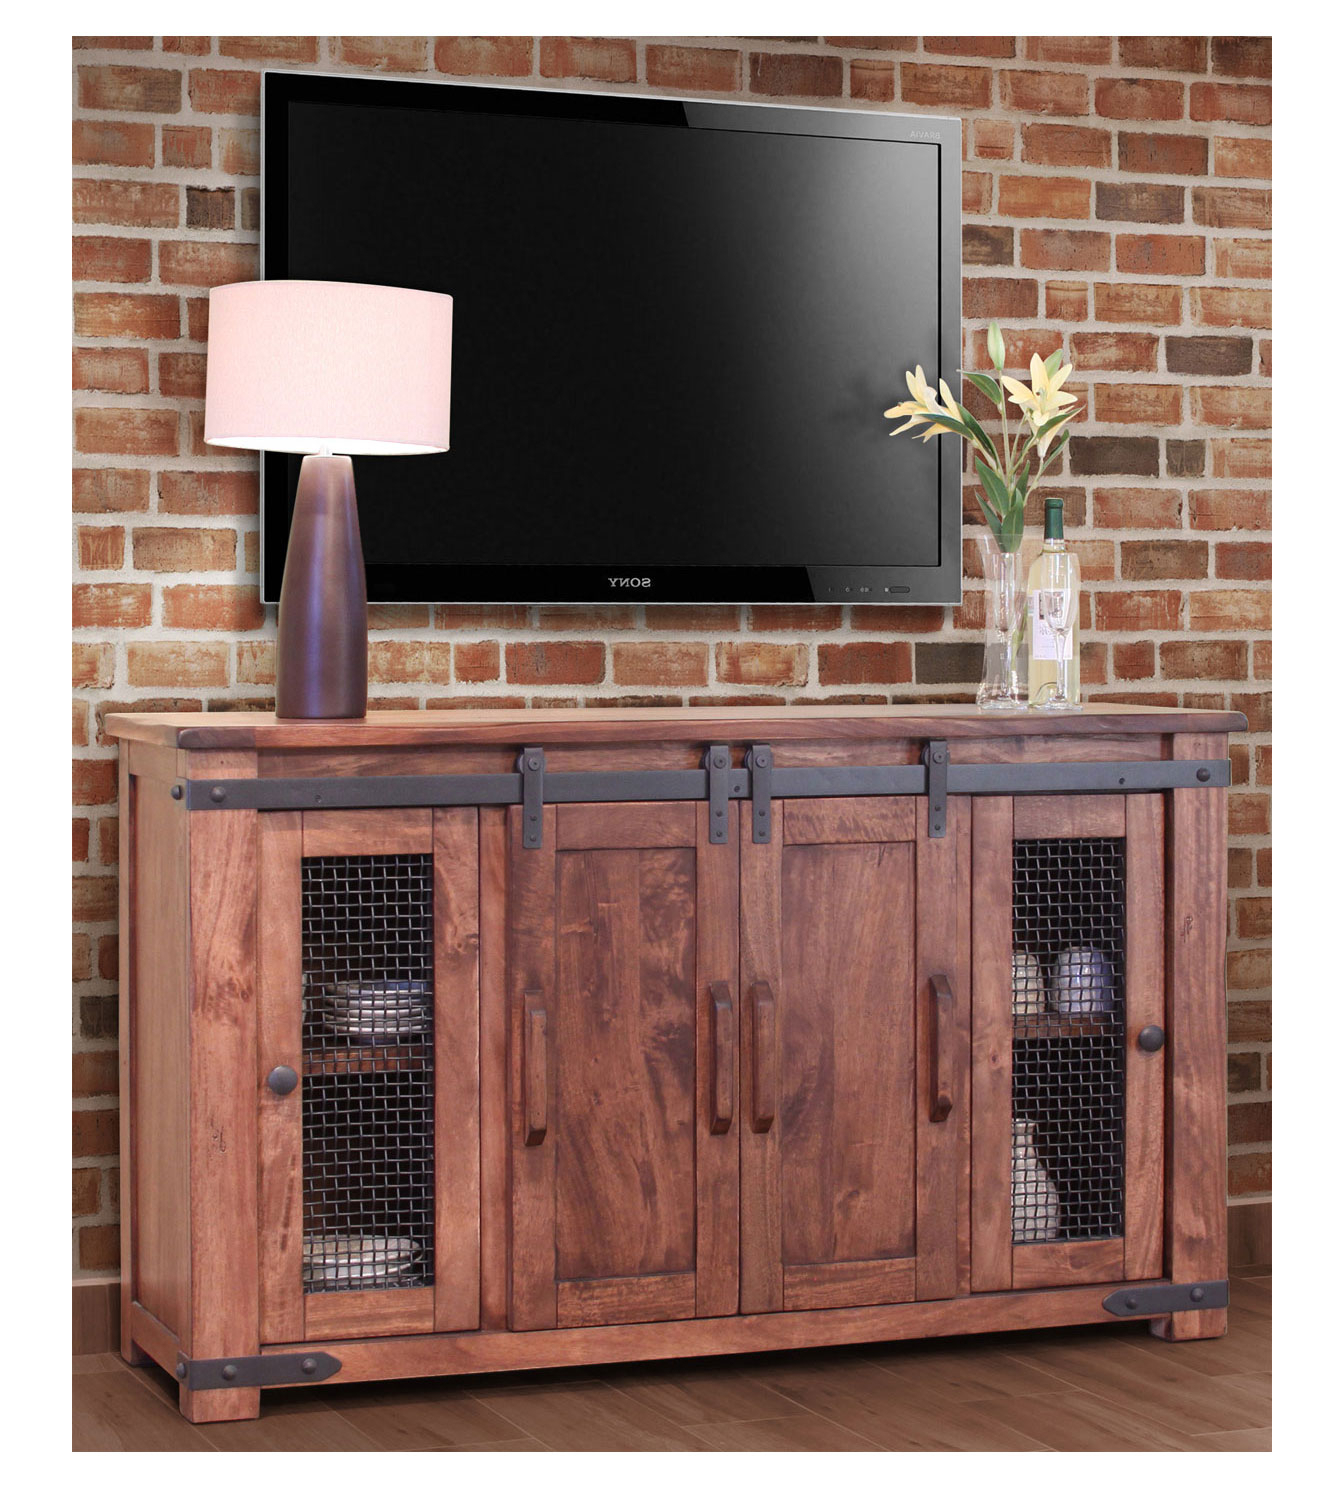 Newest Cabinet Tv Stands Pertaining To Tall Skinny Tv Stand Surprising Flat Screen Slim For Bedroom Corner (View 10 of 20)